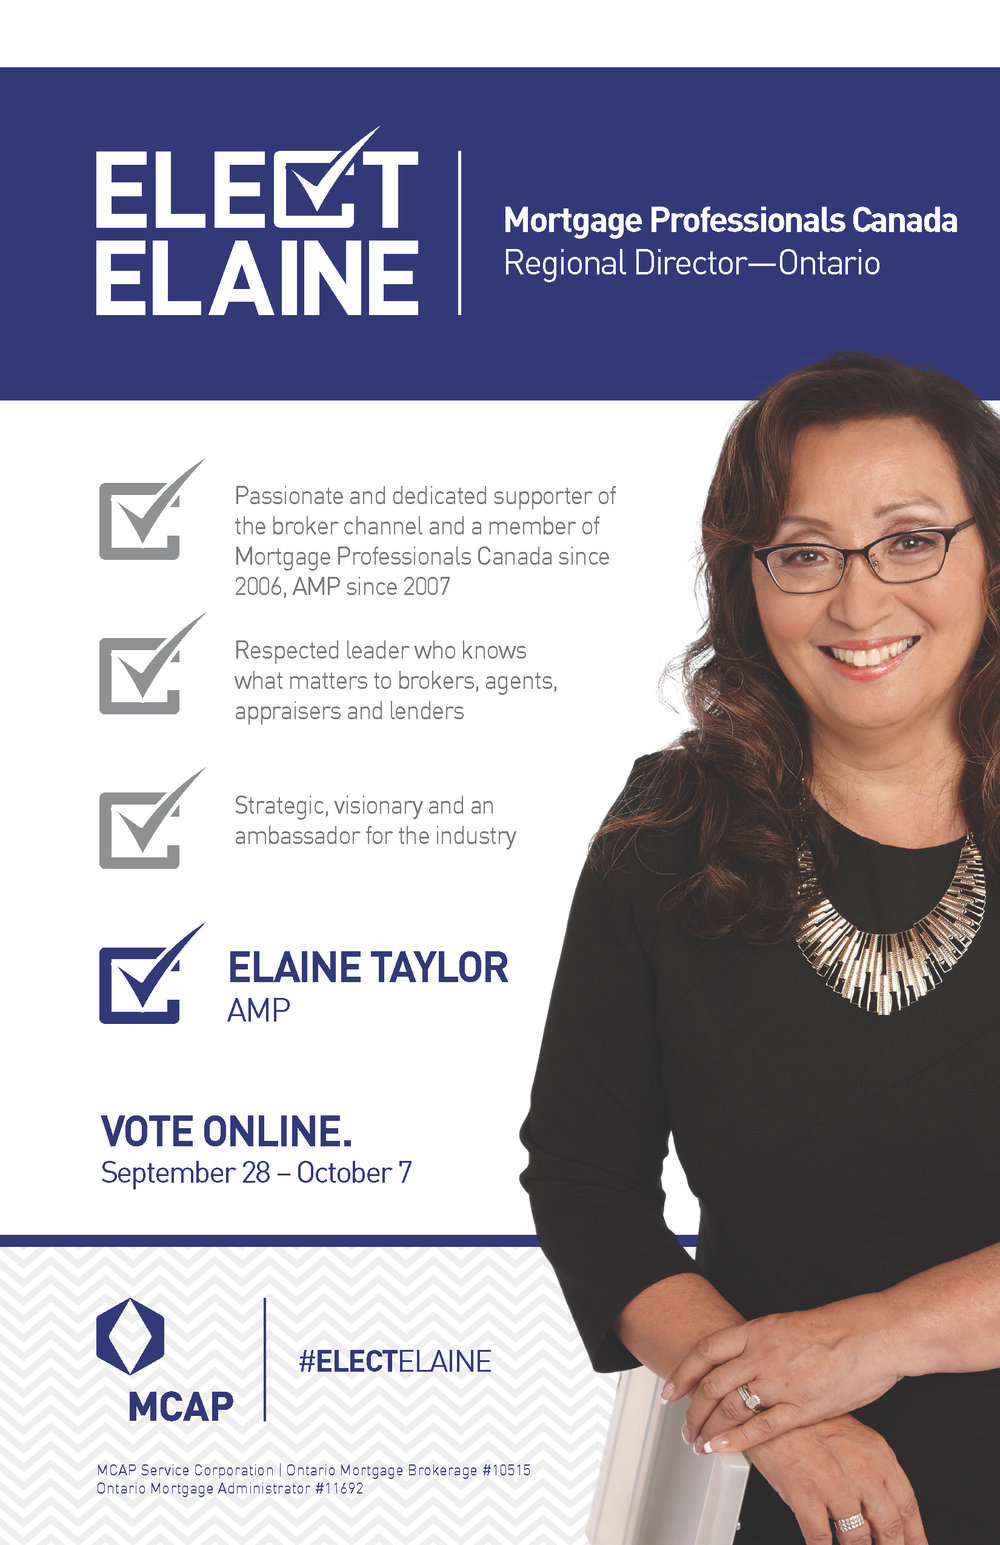 Copy of Elect Elaine Campaign Creative